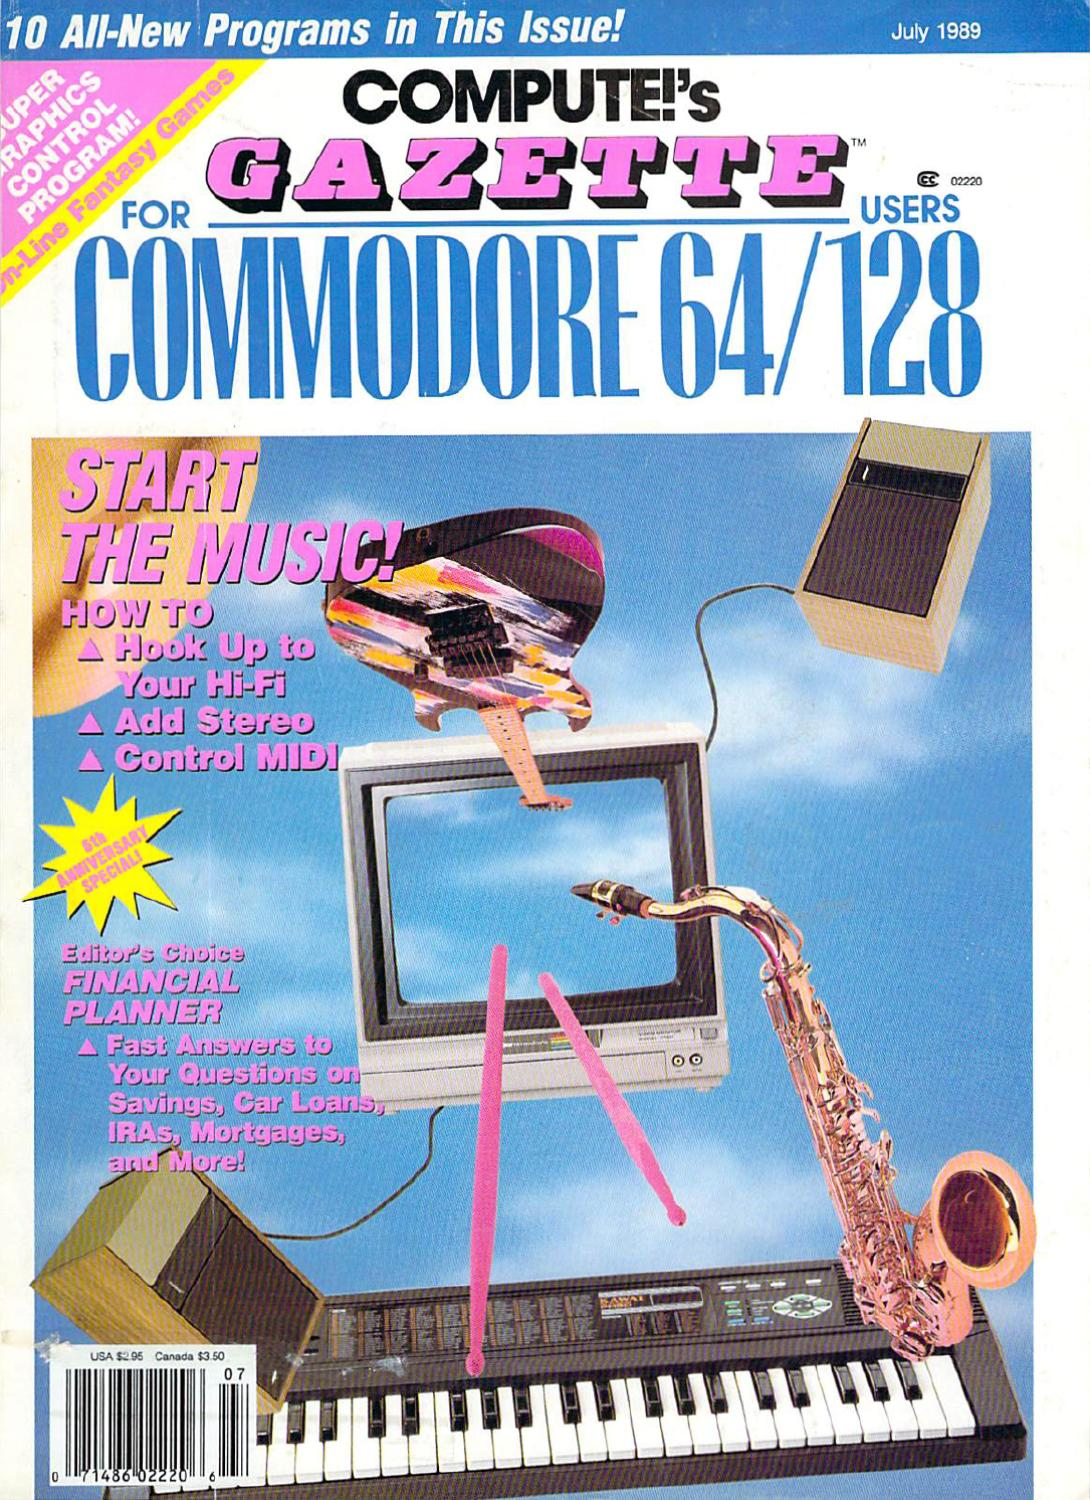 Upright Pianos Ef Bd 9cproducts Ef Bd 9ckawai Musical Instruments >> Compute Gazette Issue 73 1989 Jul By Zetmoon Issuu